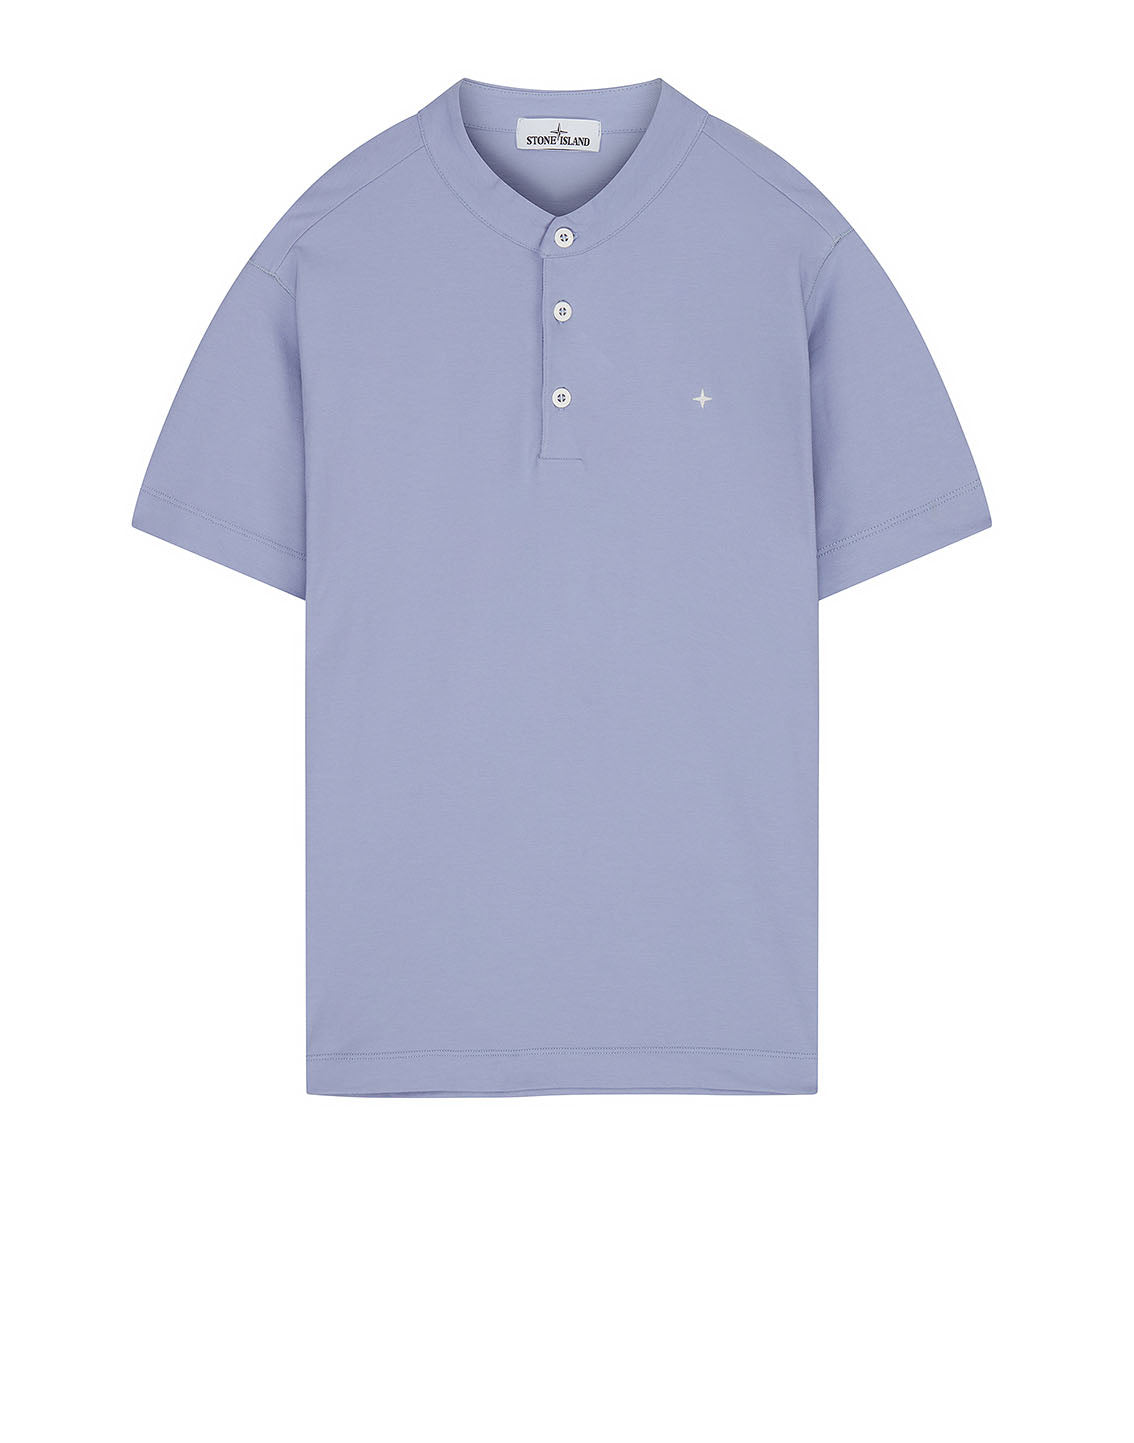 21314 T-Shirt in Lavender